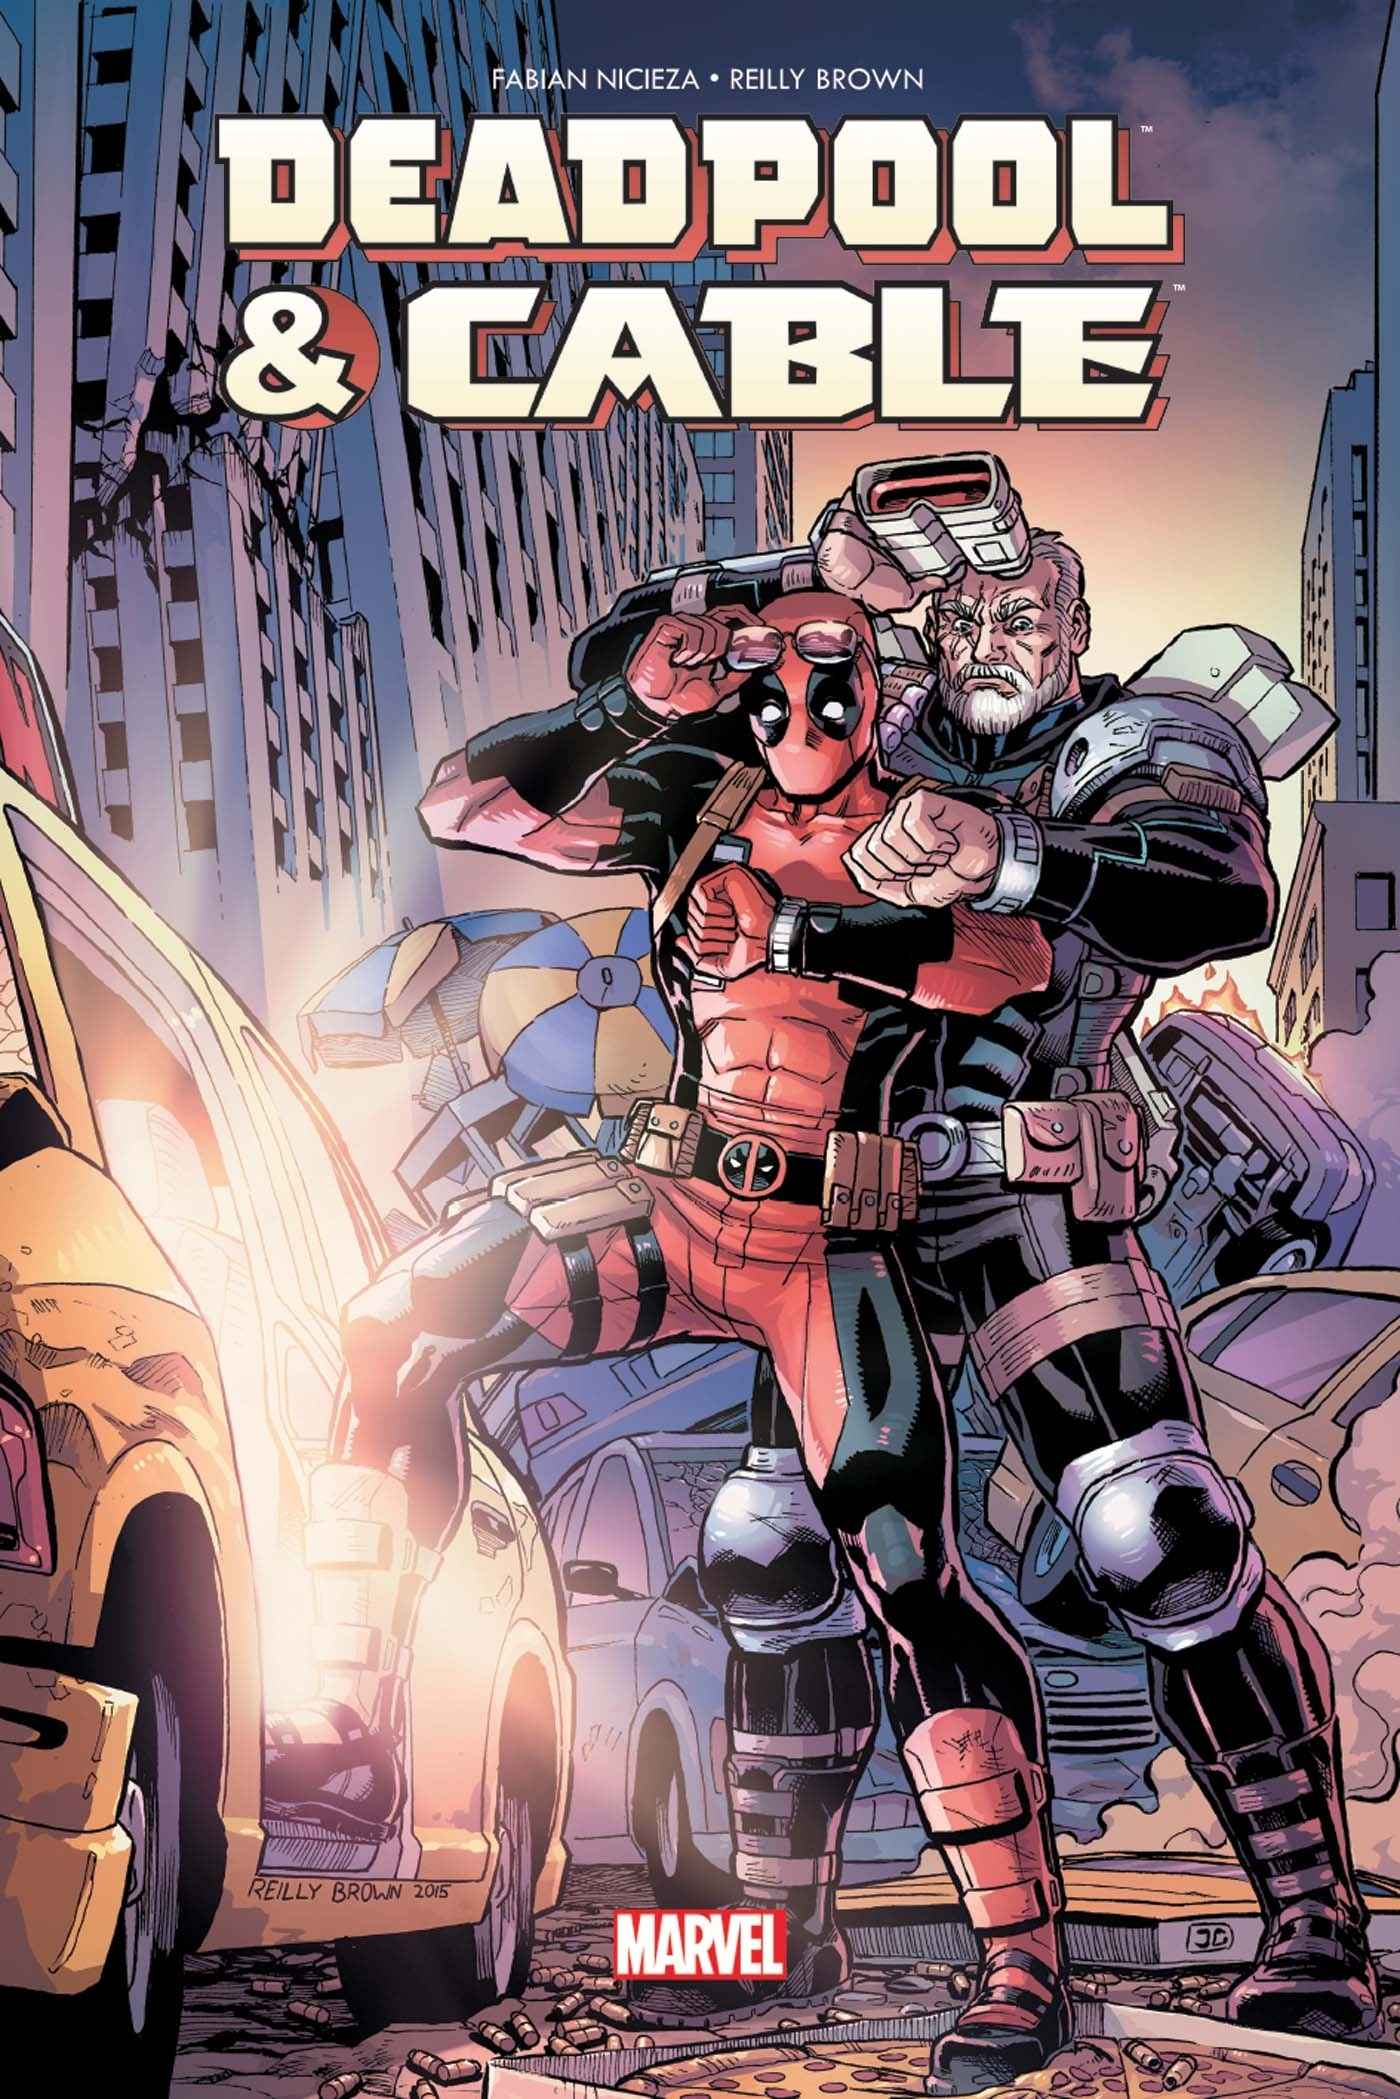 DEADPOOL ET CABLE FRACTION DE SECONDE